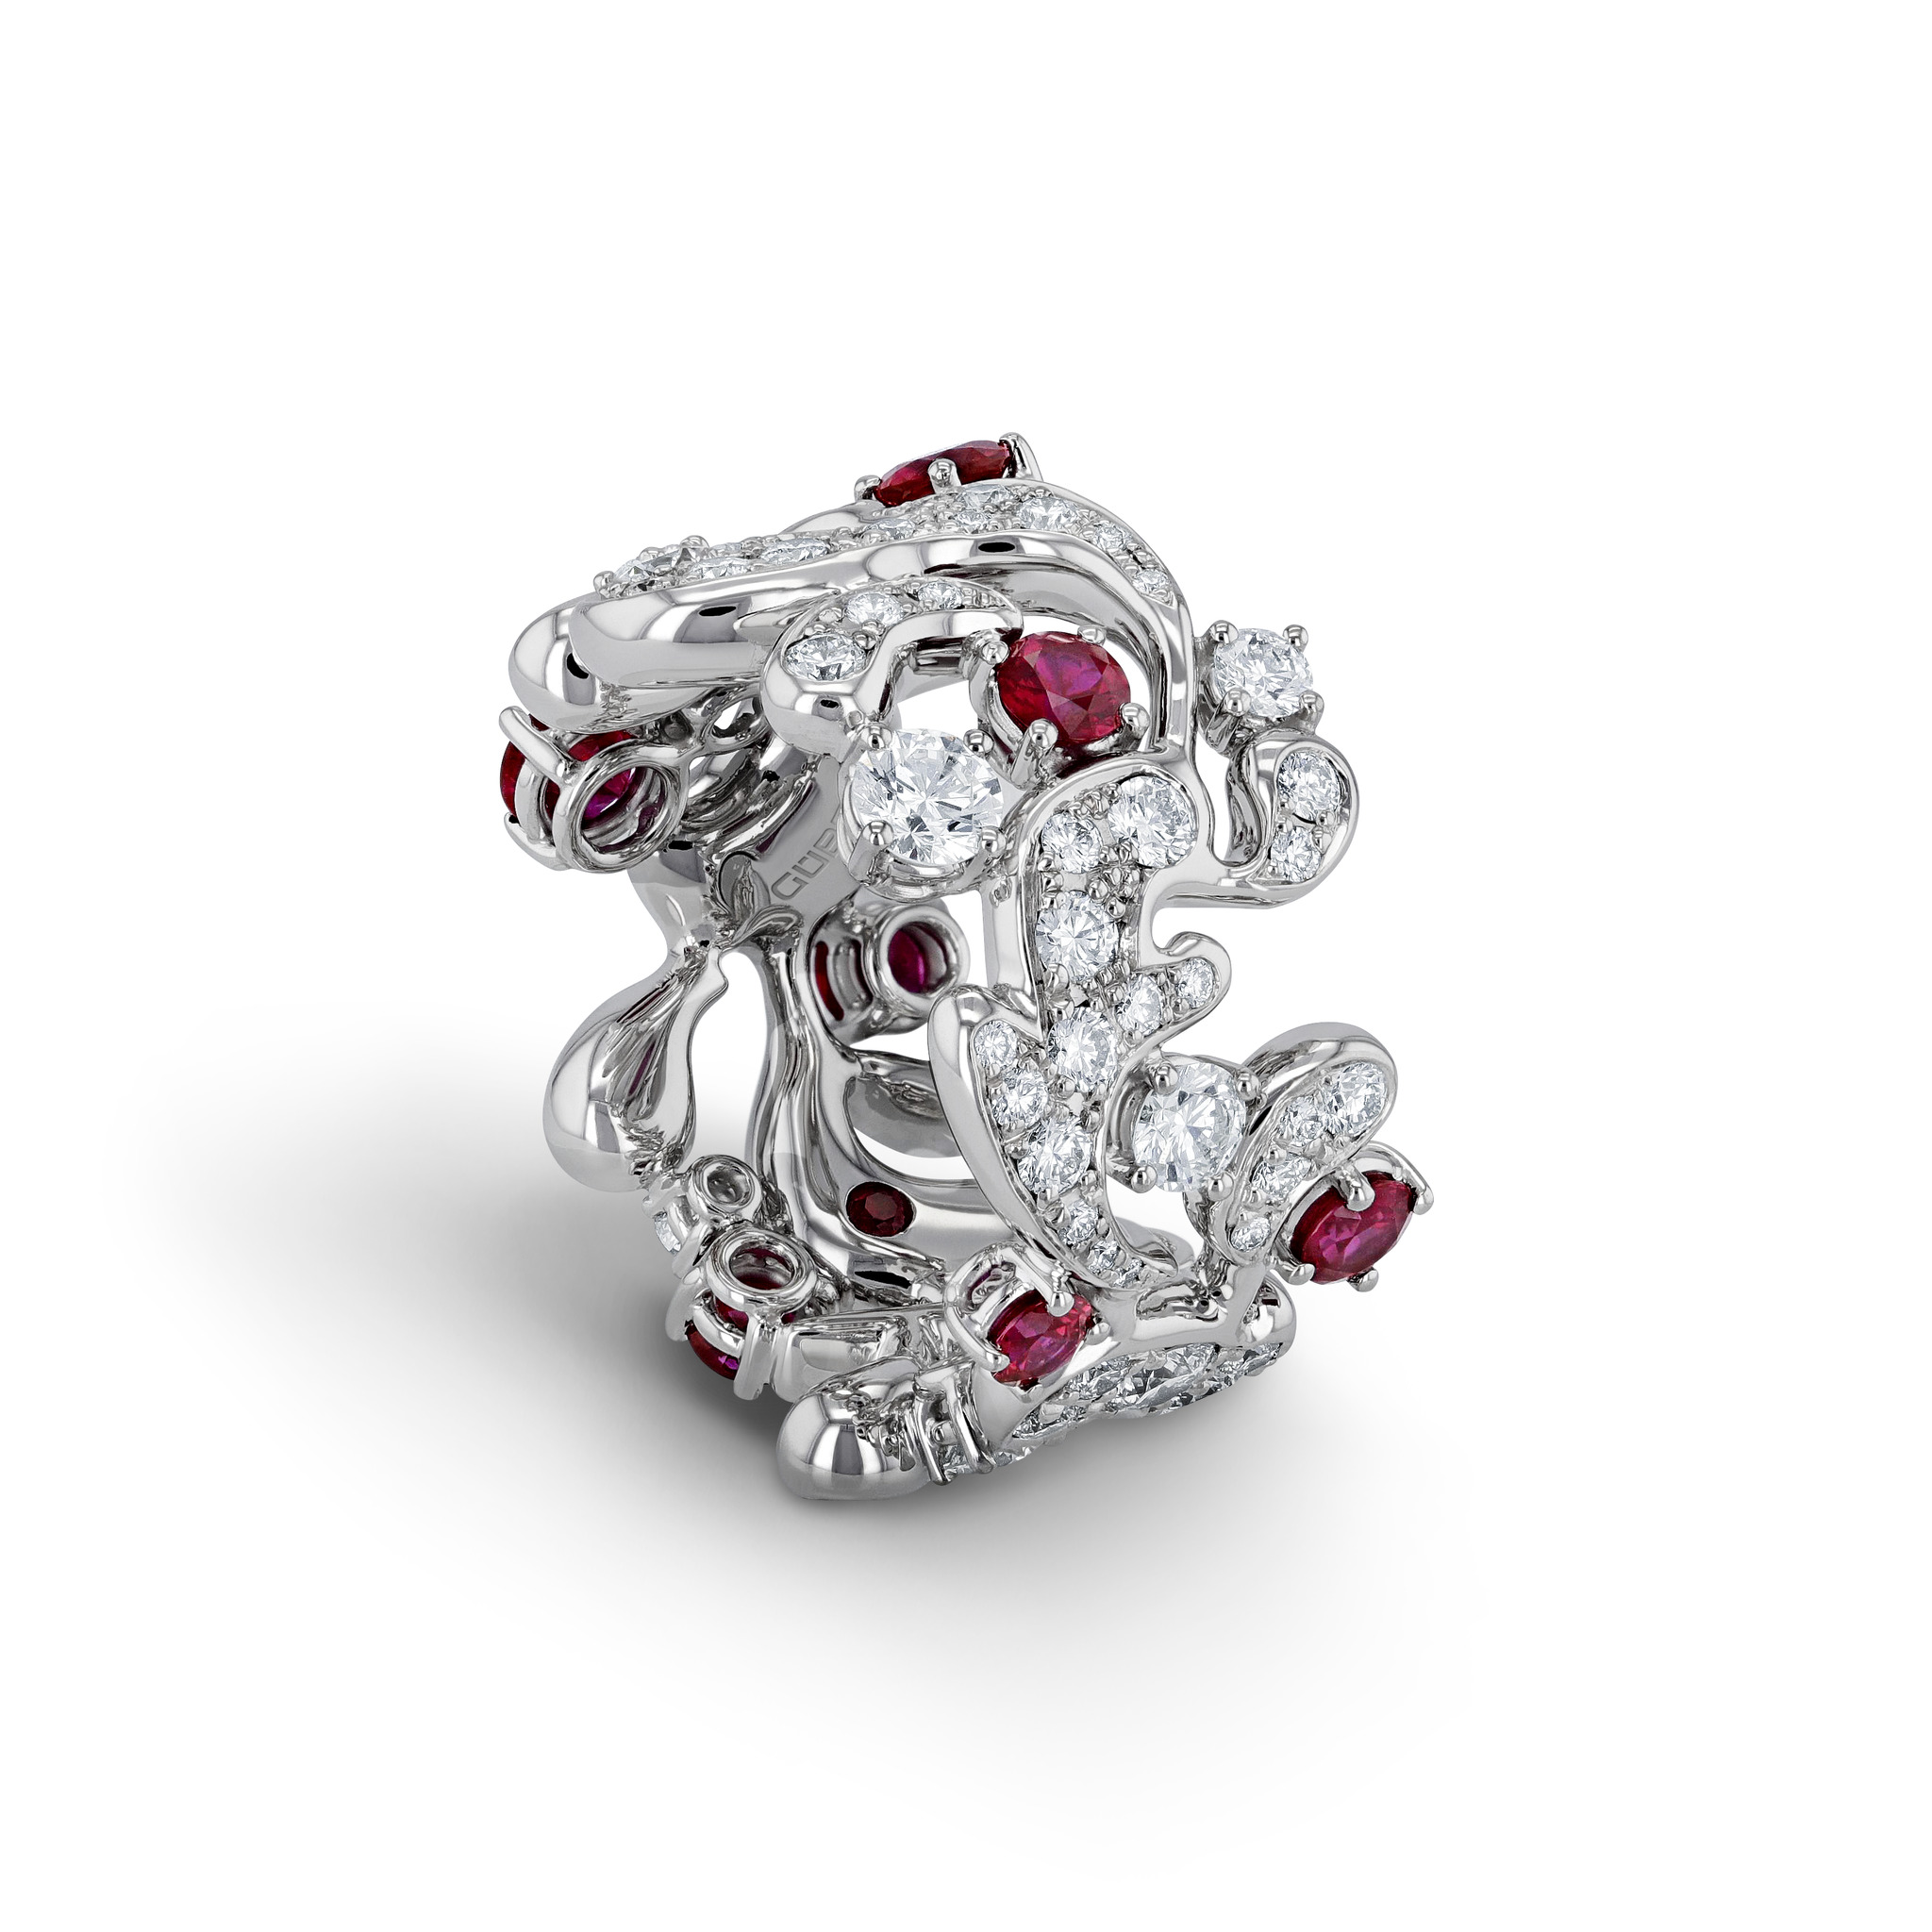 Ring with rubies